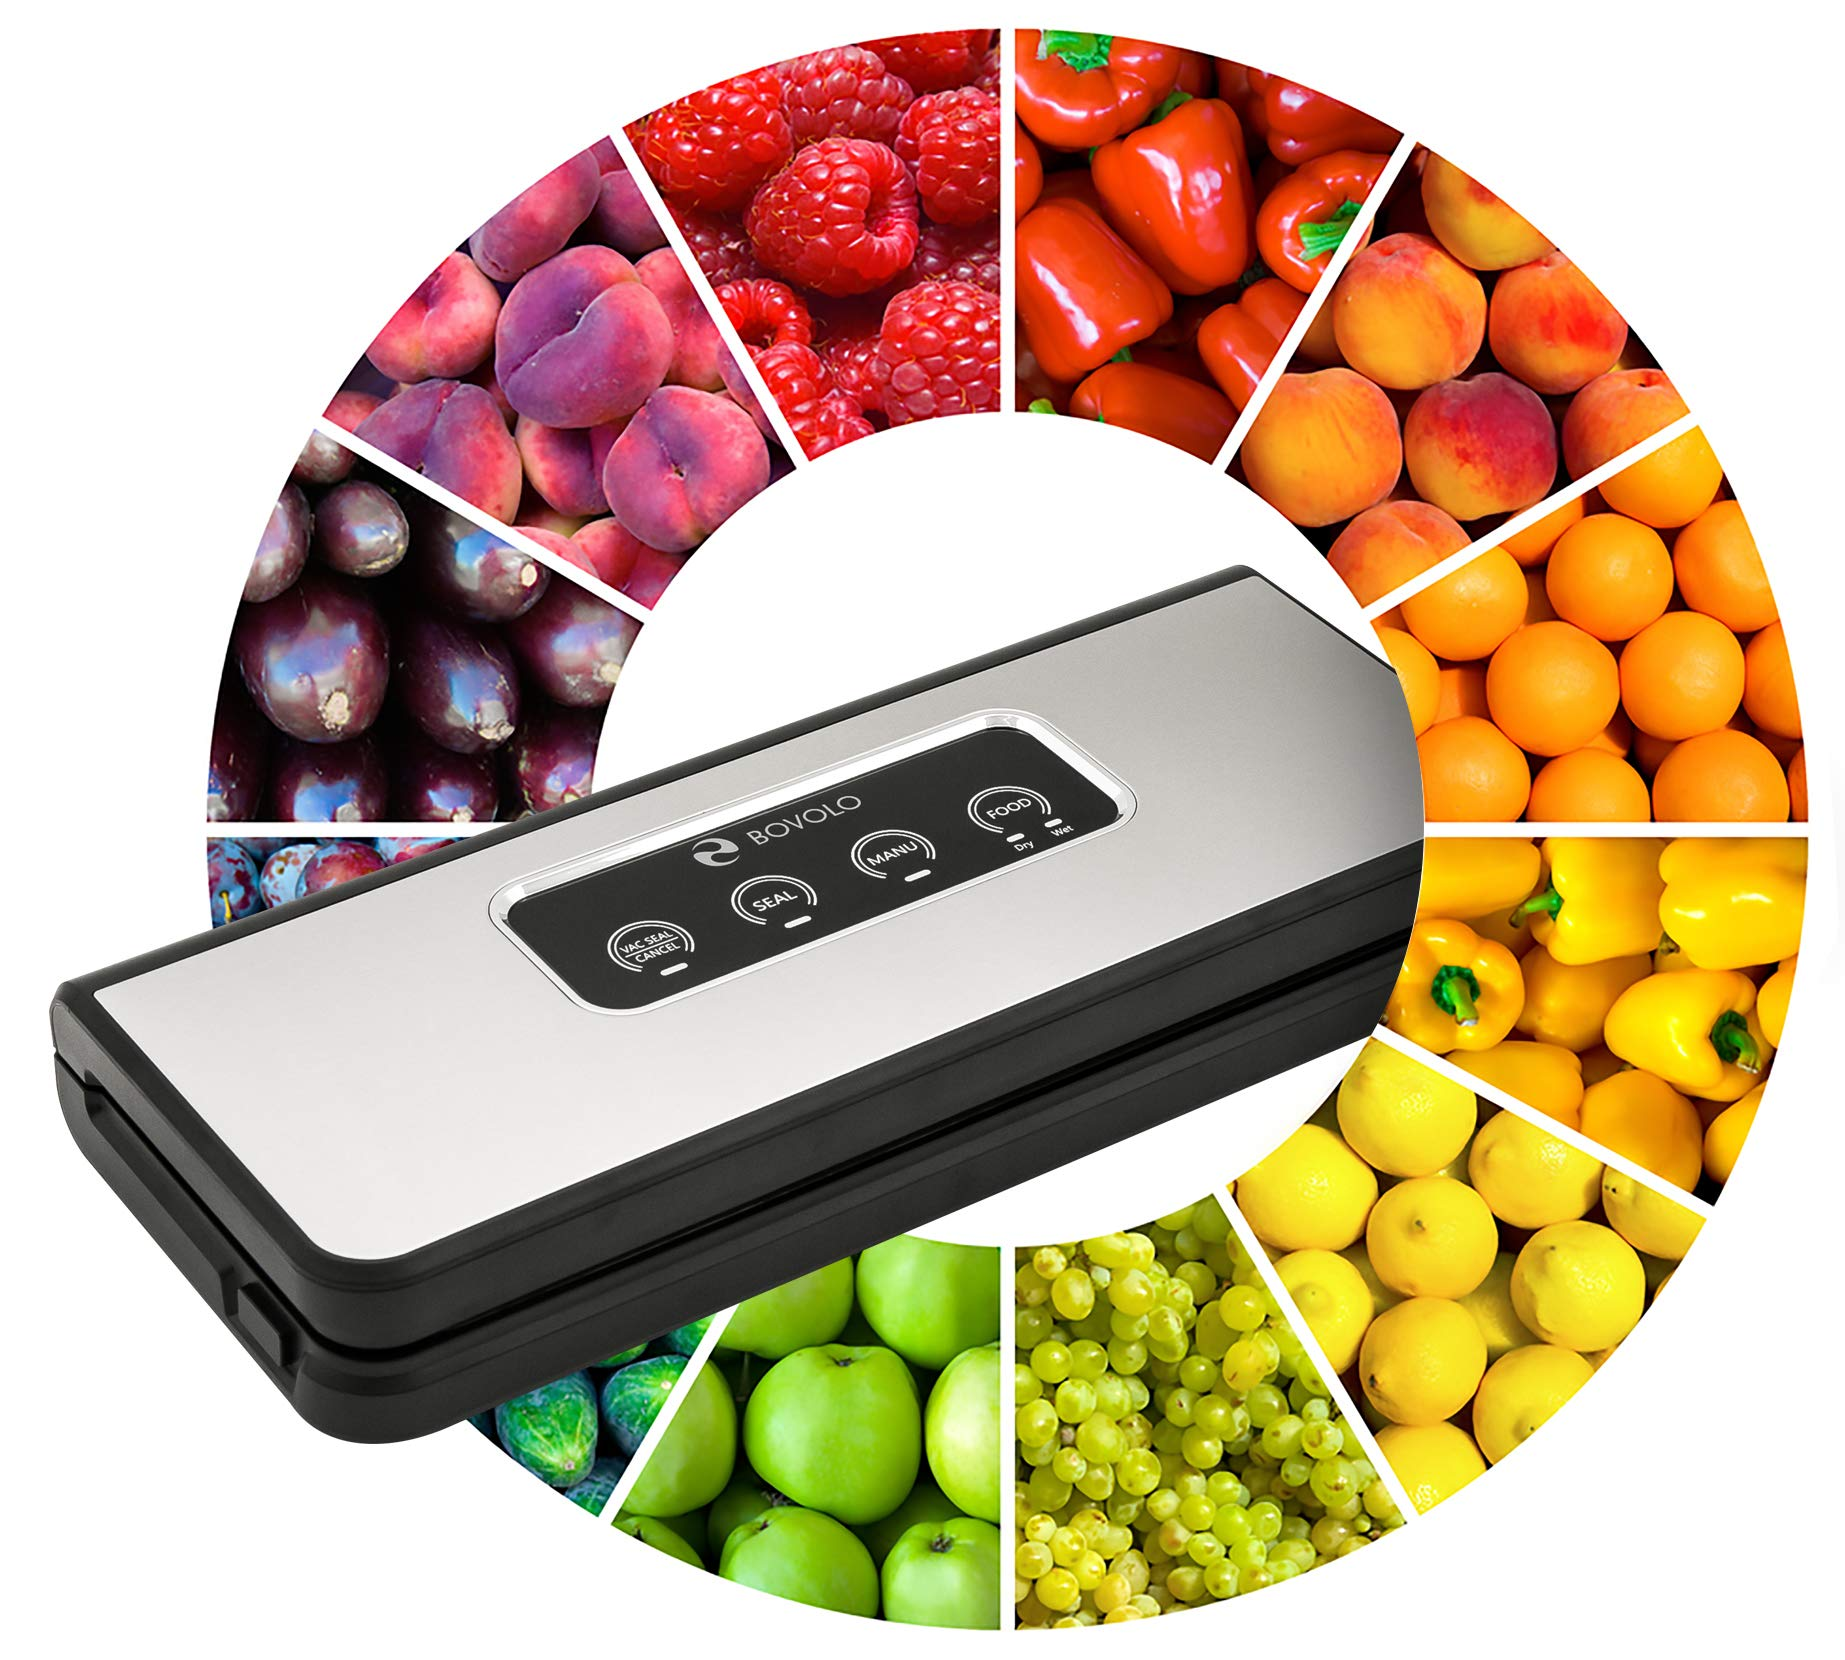 Vacuum Sealer Machine - Food Saver Vacuum Sealer Machine - Vaccume Sealer Machine - Food Sealer - Seal a Meal Vacume Machines - Food Sealers Vacuum Packing Machine - Sous Vide Vaccum Food Savers by Bovolo Techno Park